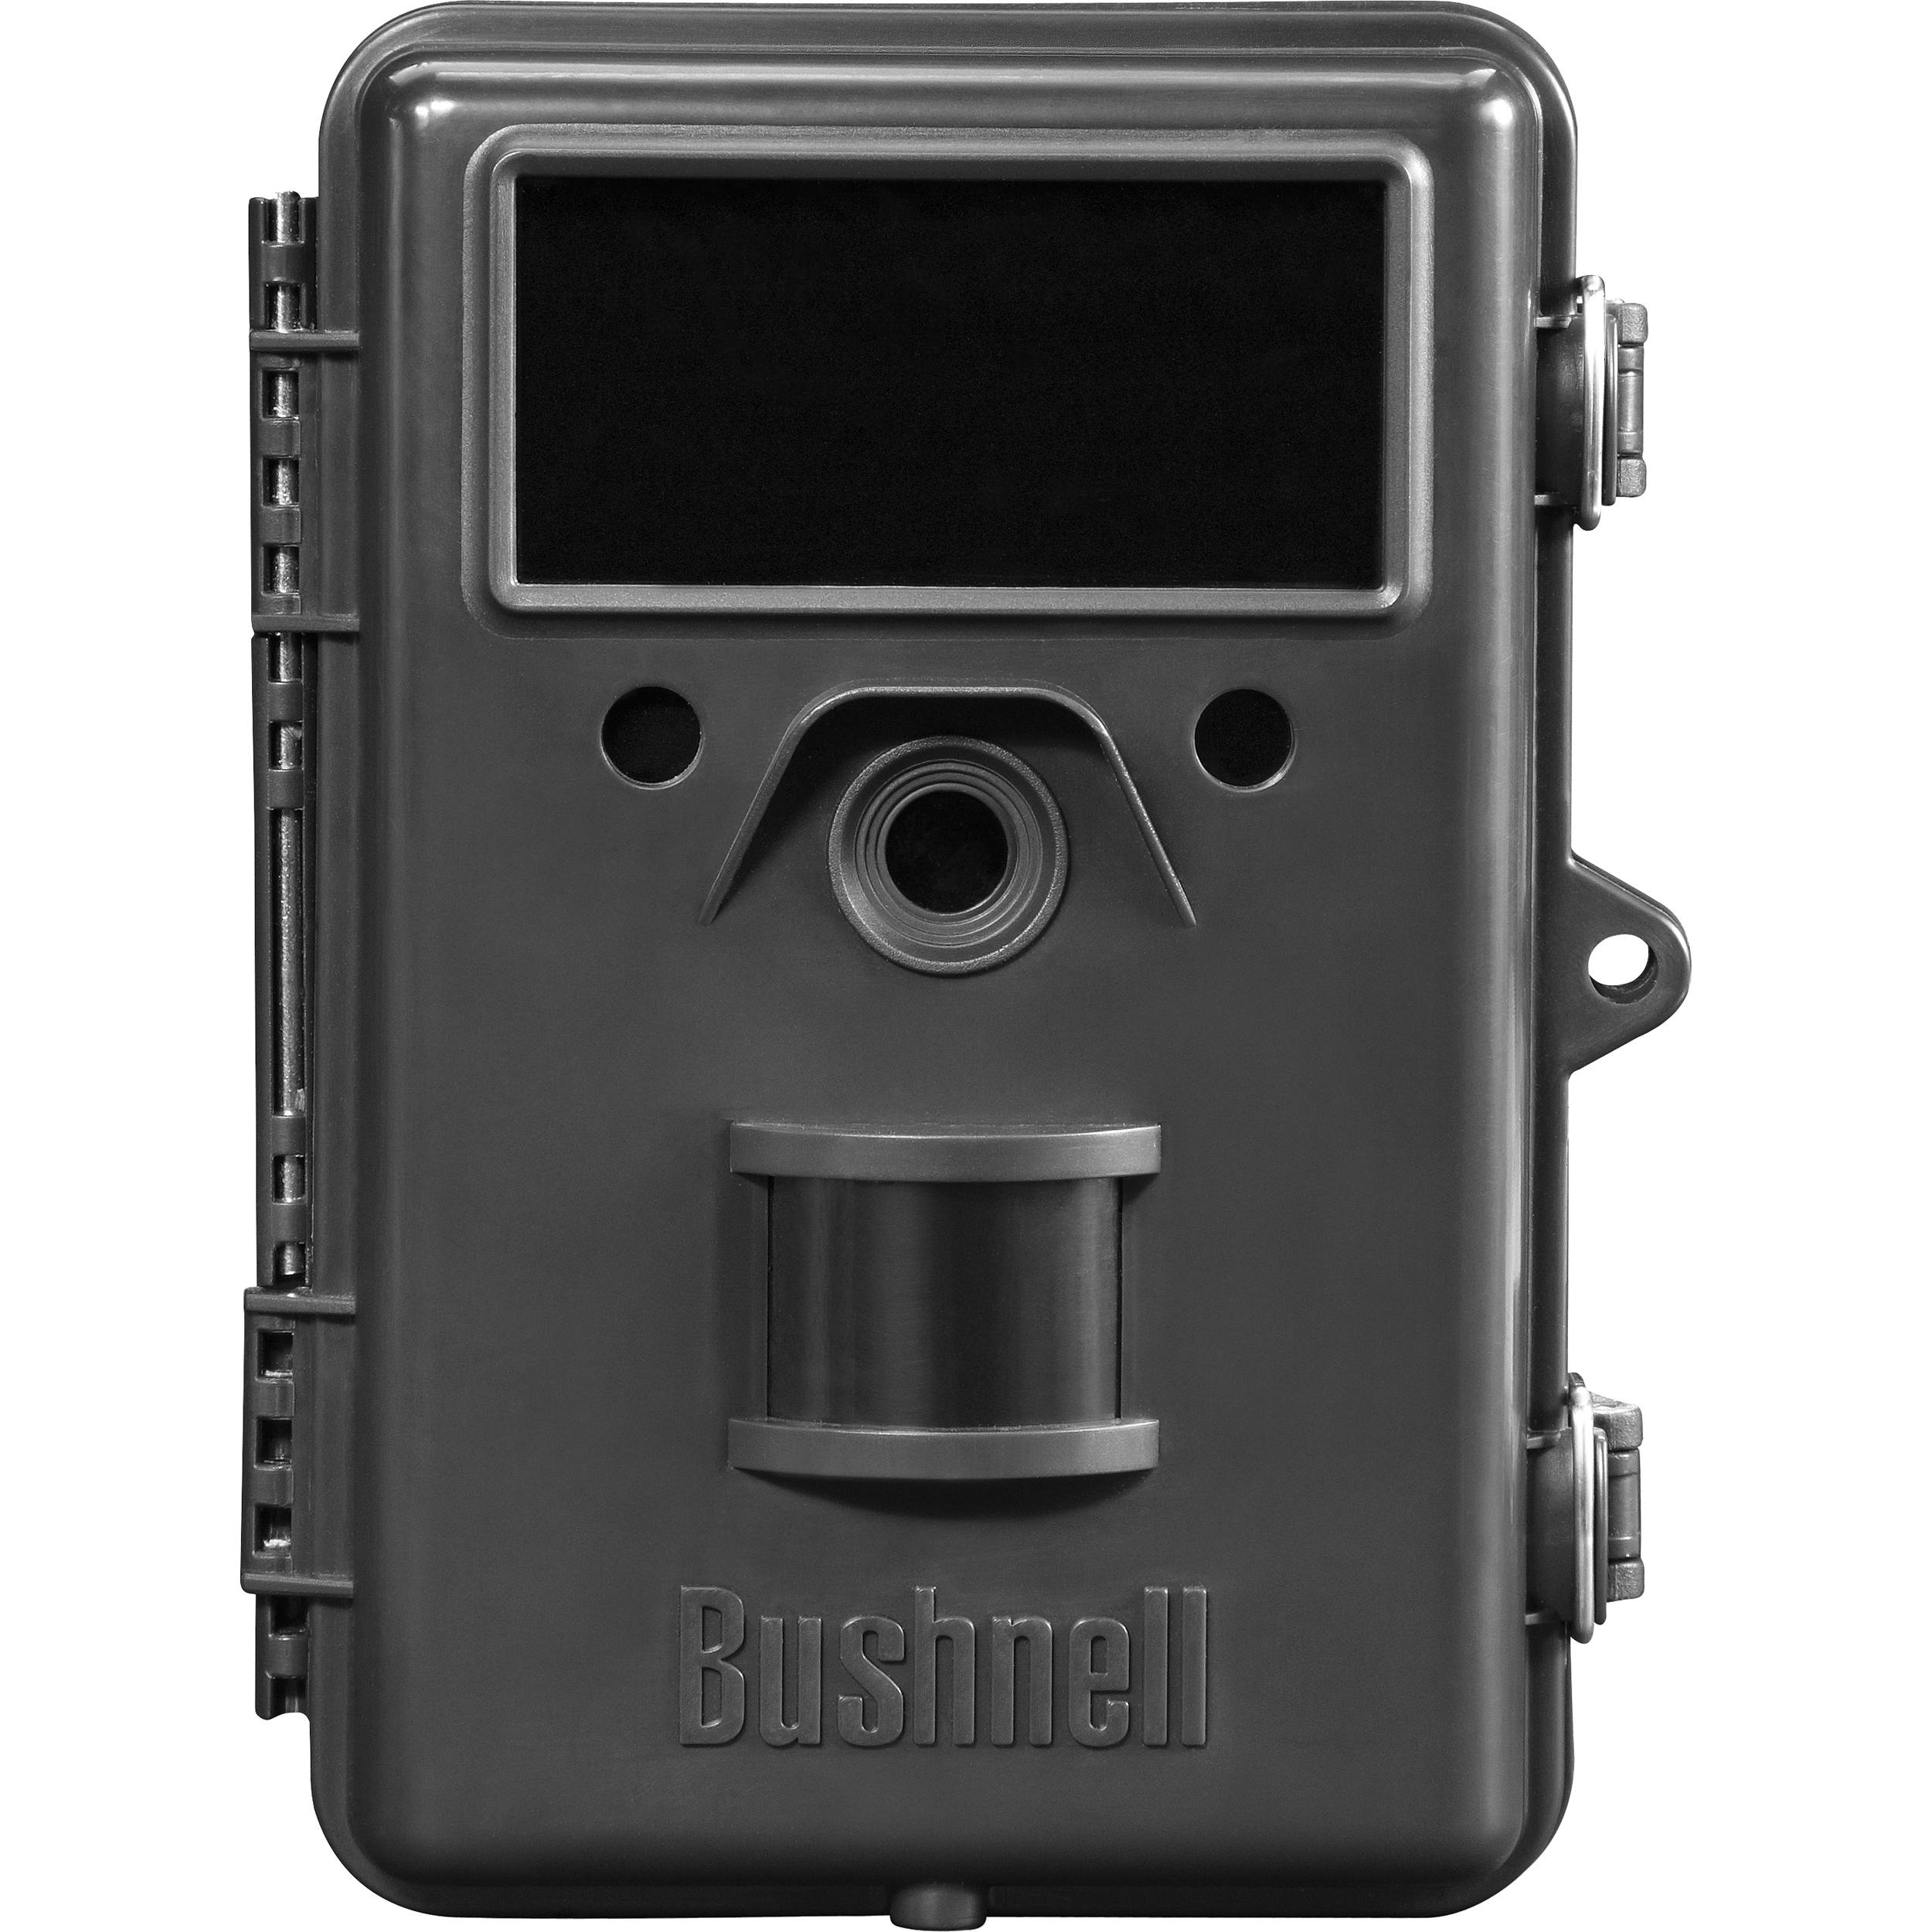 bushnell trophy cam trail camera black 119466c b h photo video. Black Bedroom Furniture Sets. Home Design Ideas